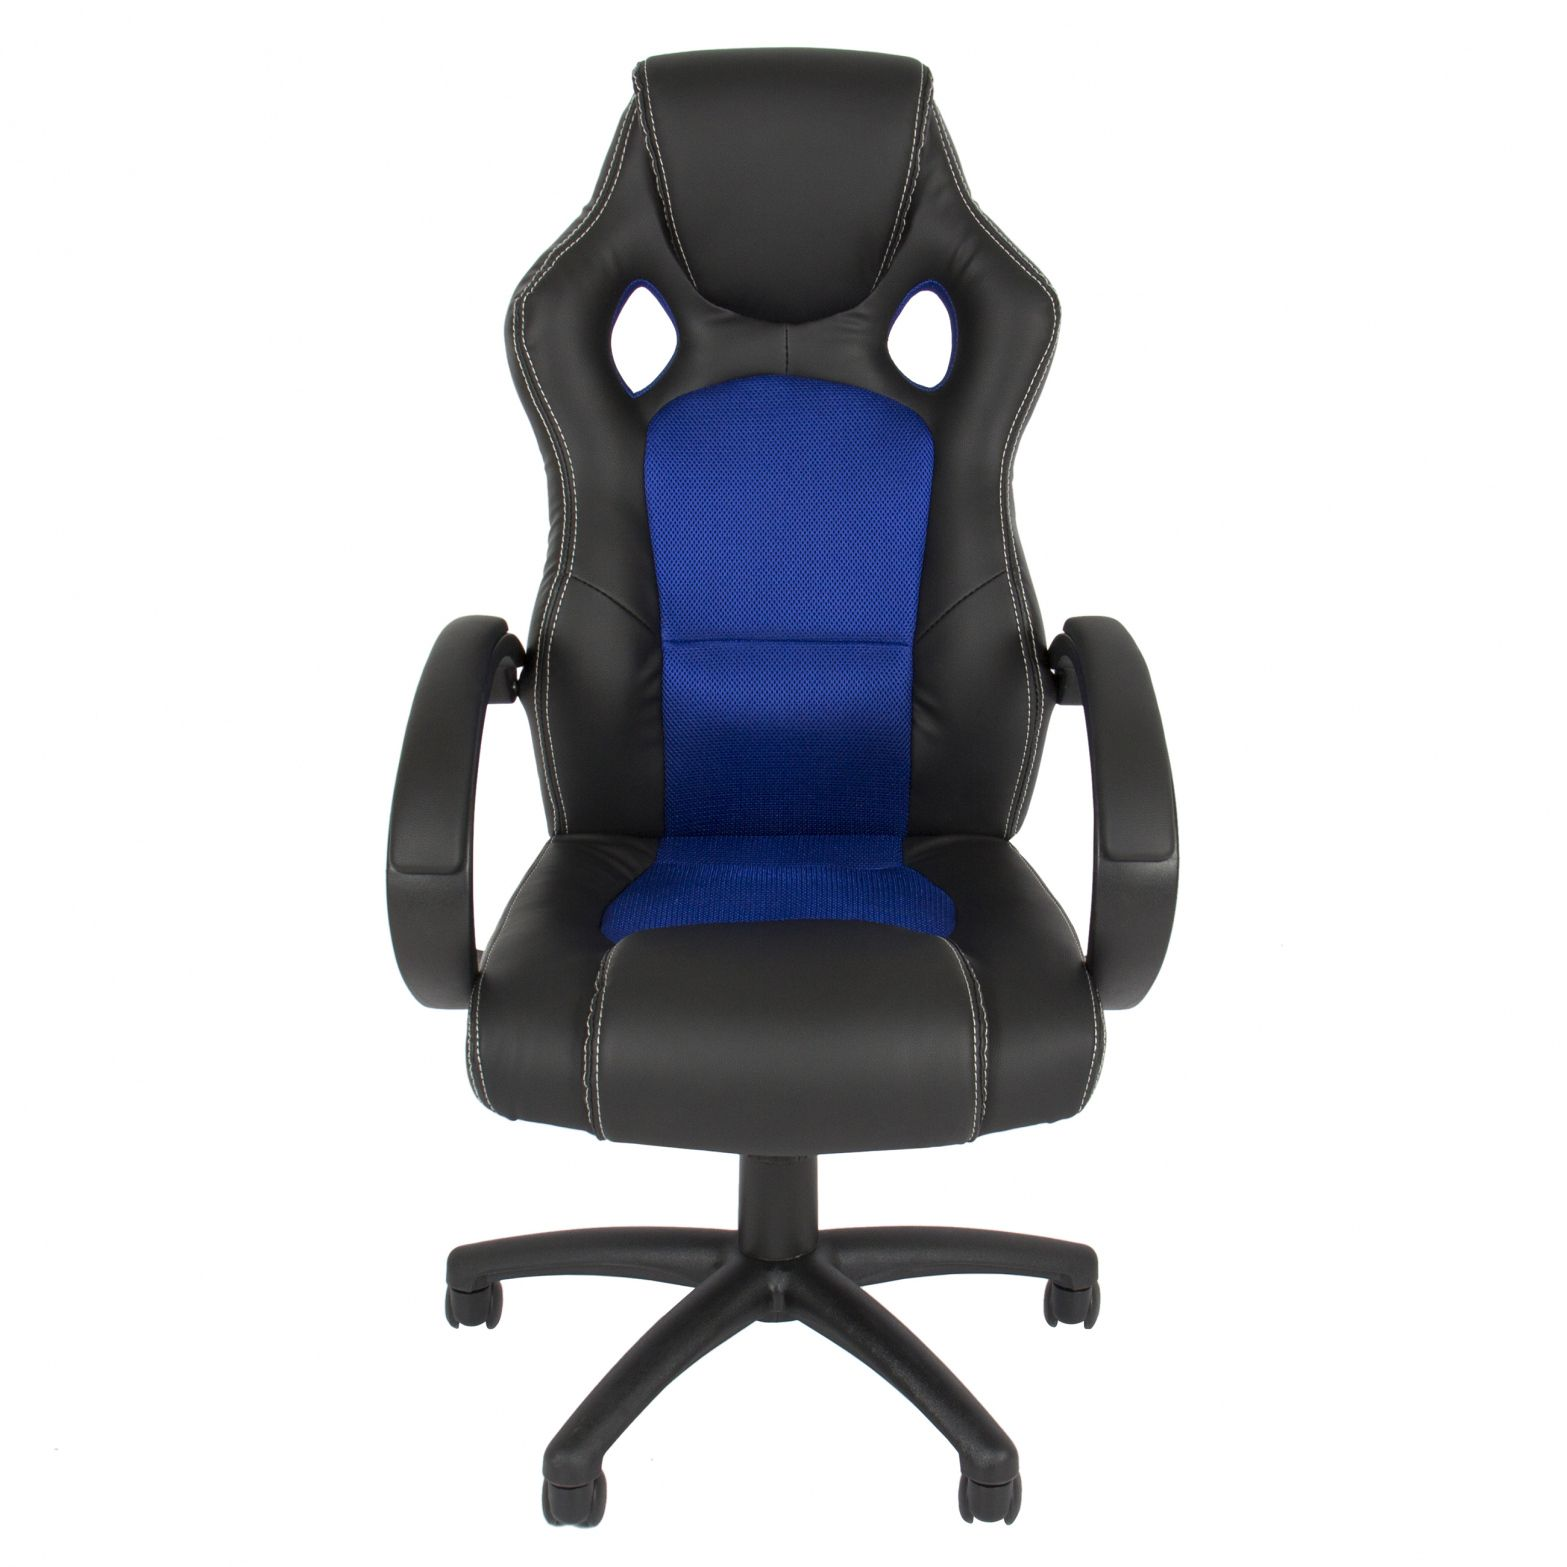 2019 Blue Leather Executive Office Chair Furniture For Home Check More At Http